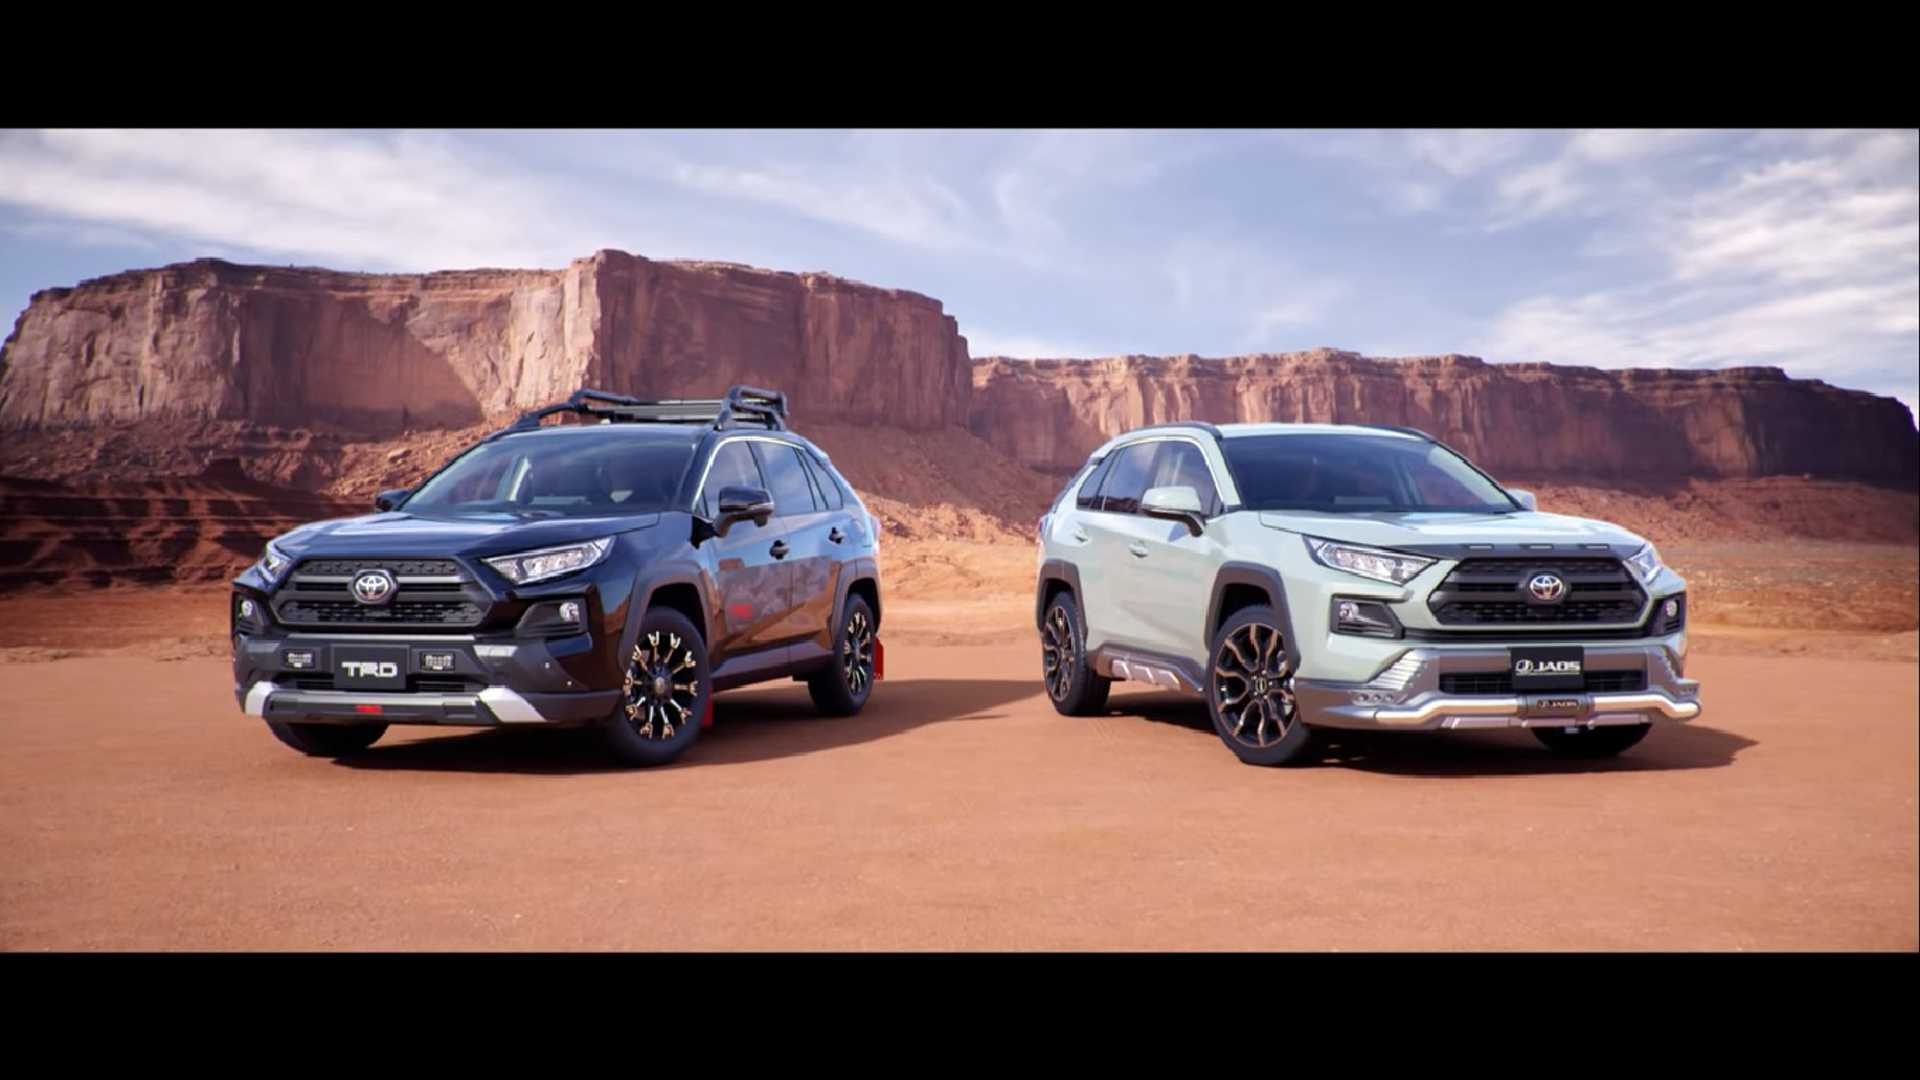 Toyota has made four new versions of its RAV4 SUV available in Japan, two of which have been designed by Toyota Racing Development (TRD) and the other two by Modellista